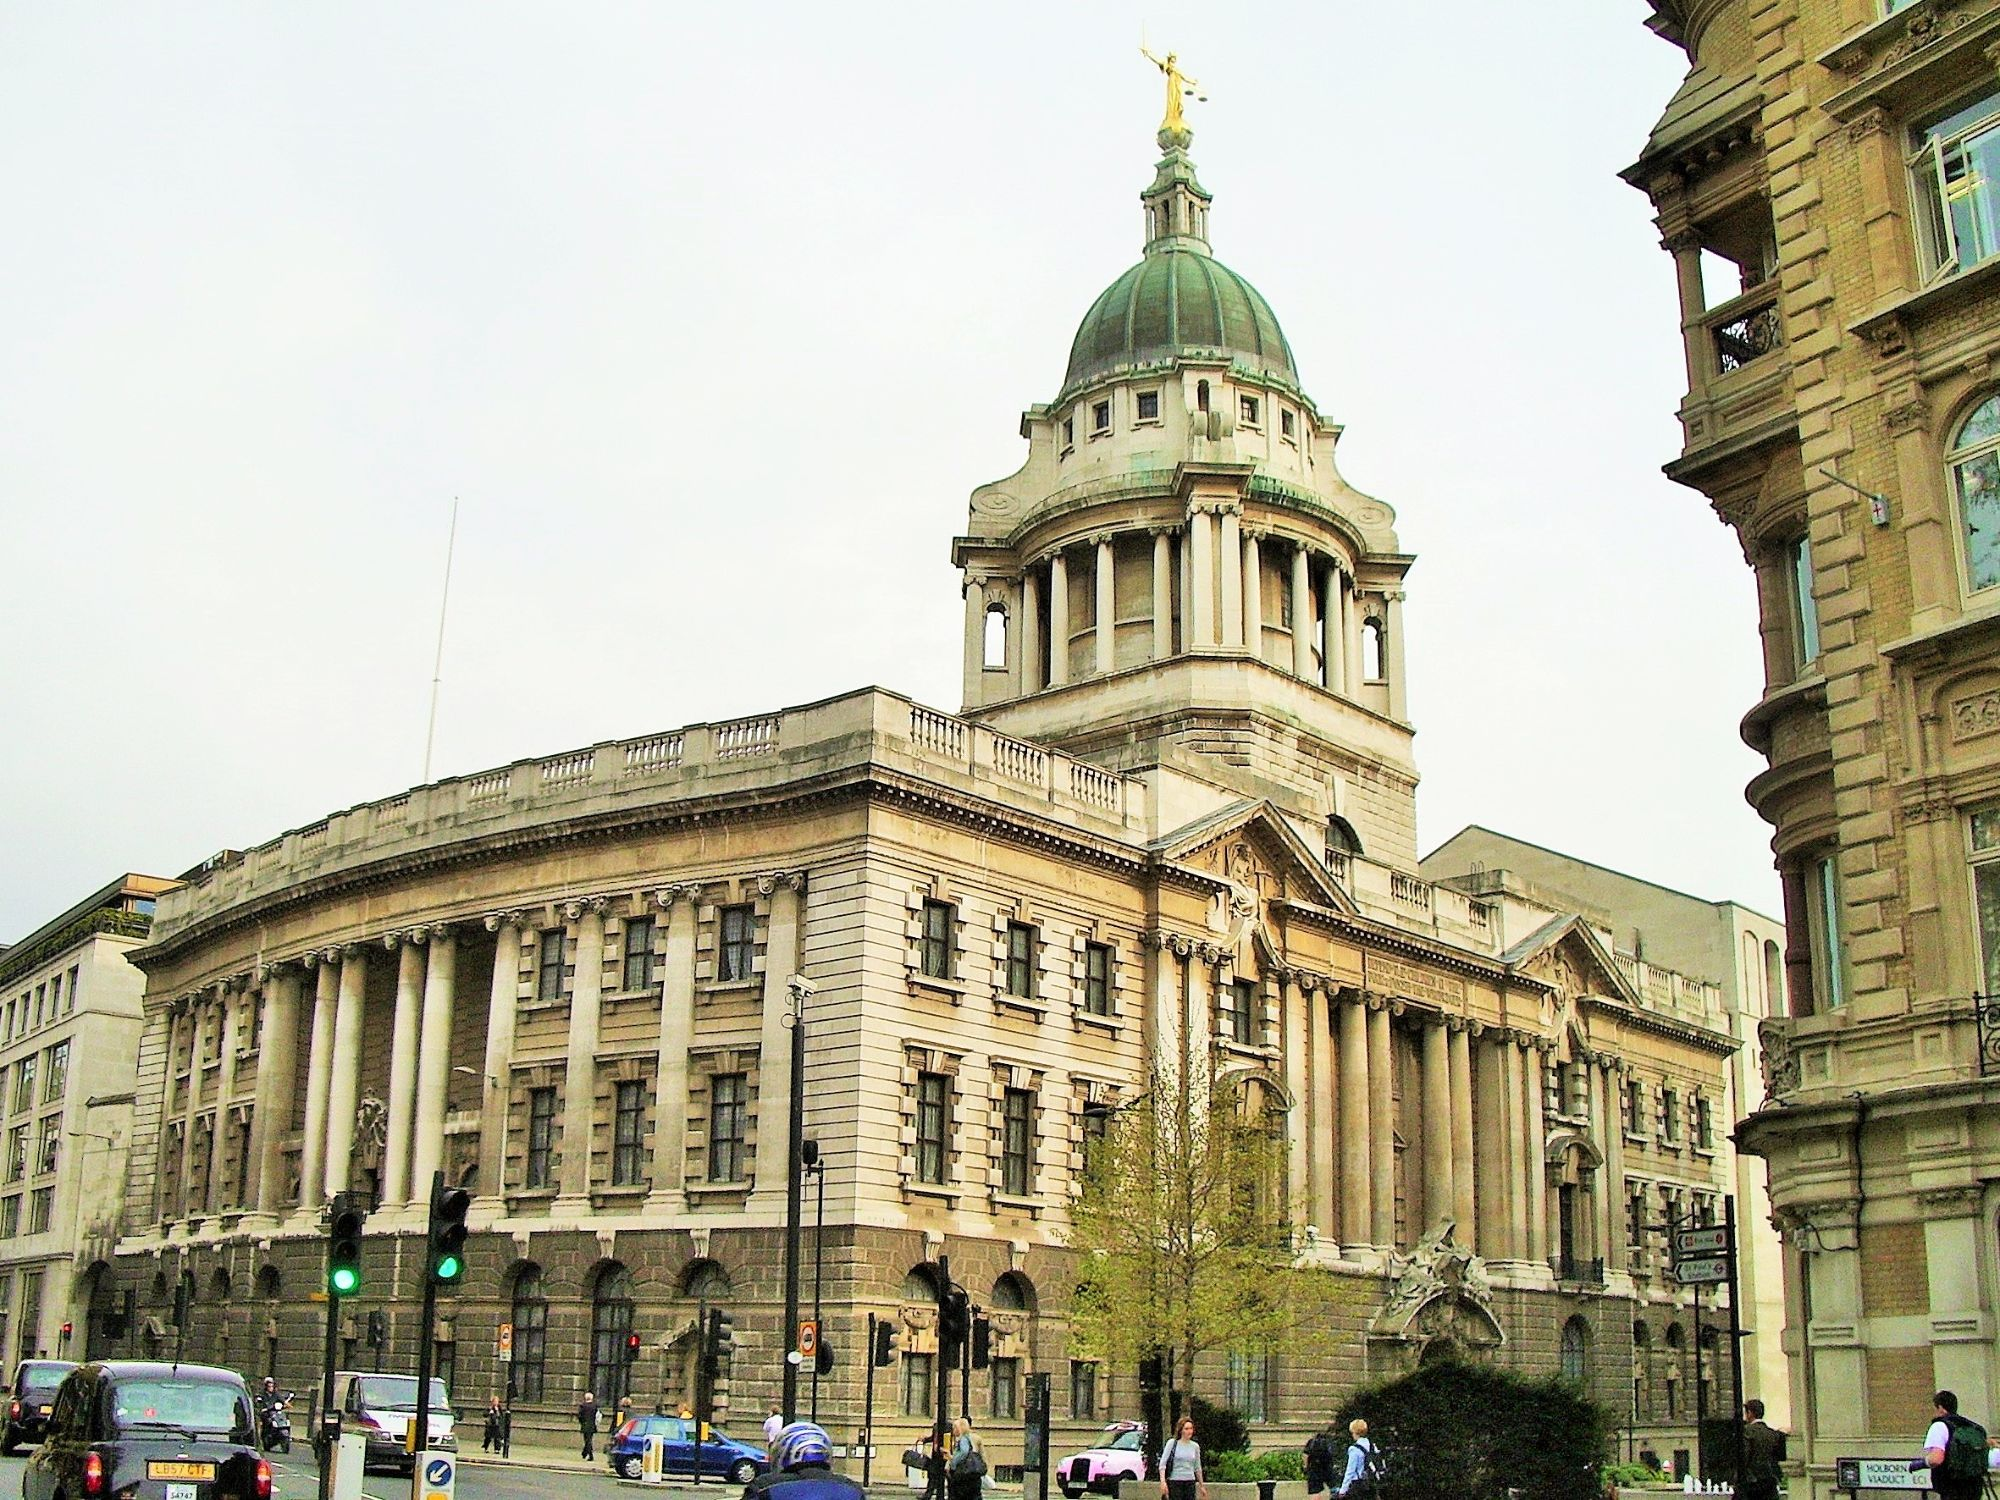 Photo of the exterior of the Old Bailey.